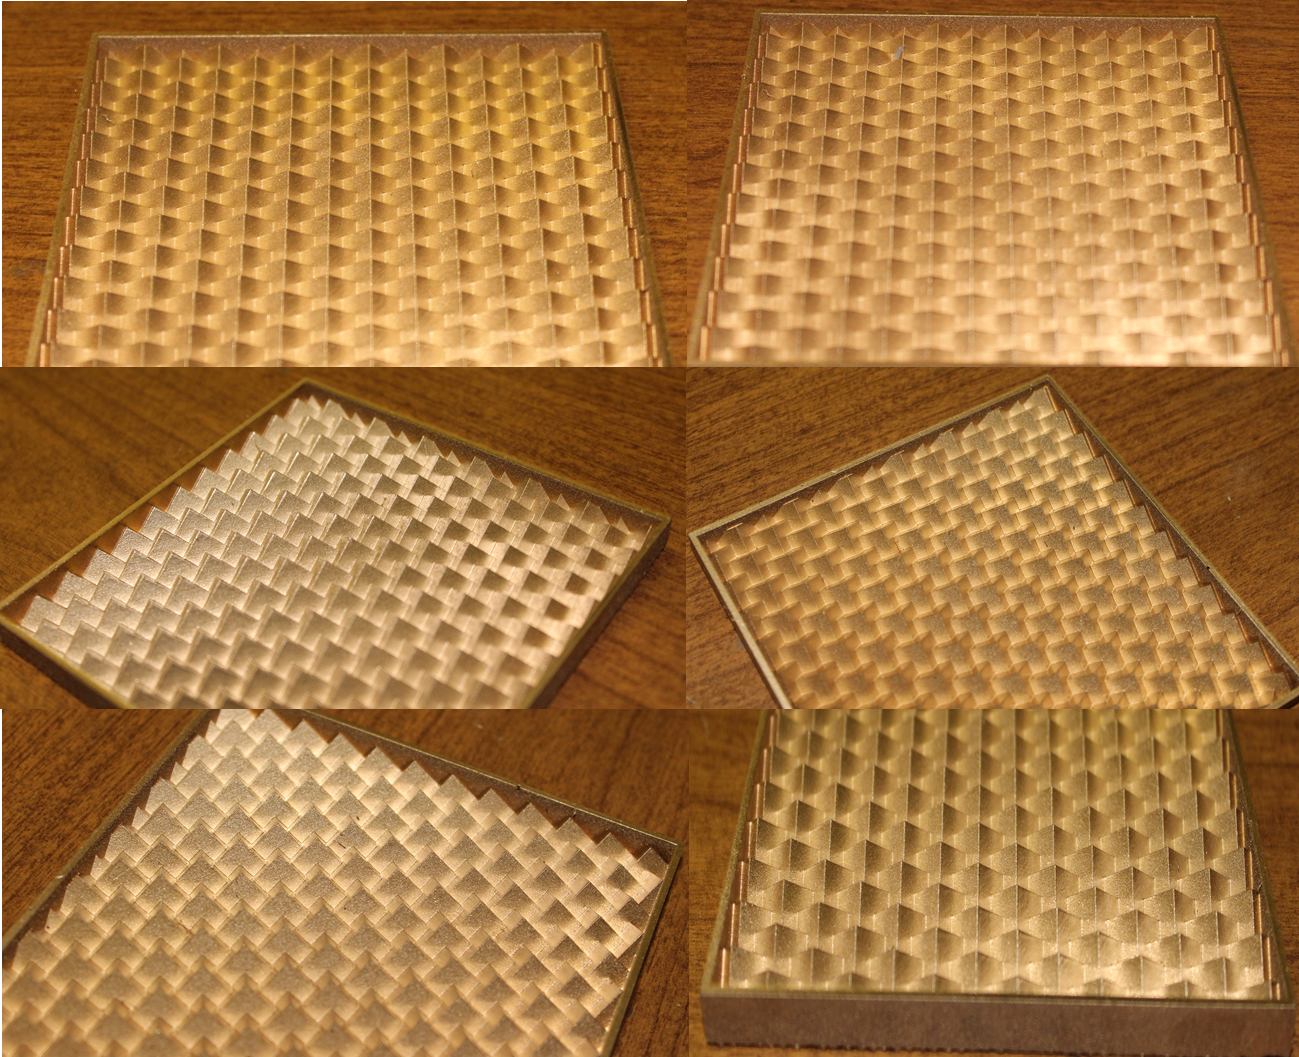 Figure 1. Prototype tile created using an equilateral triangle truncation object having a 30° truncation rotation